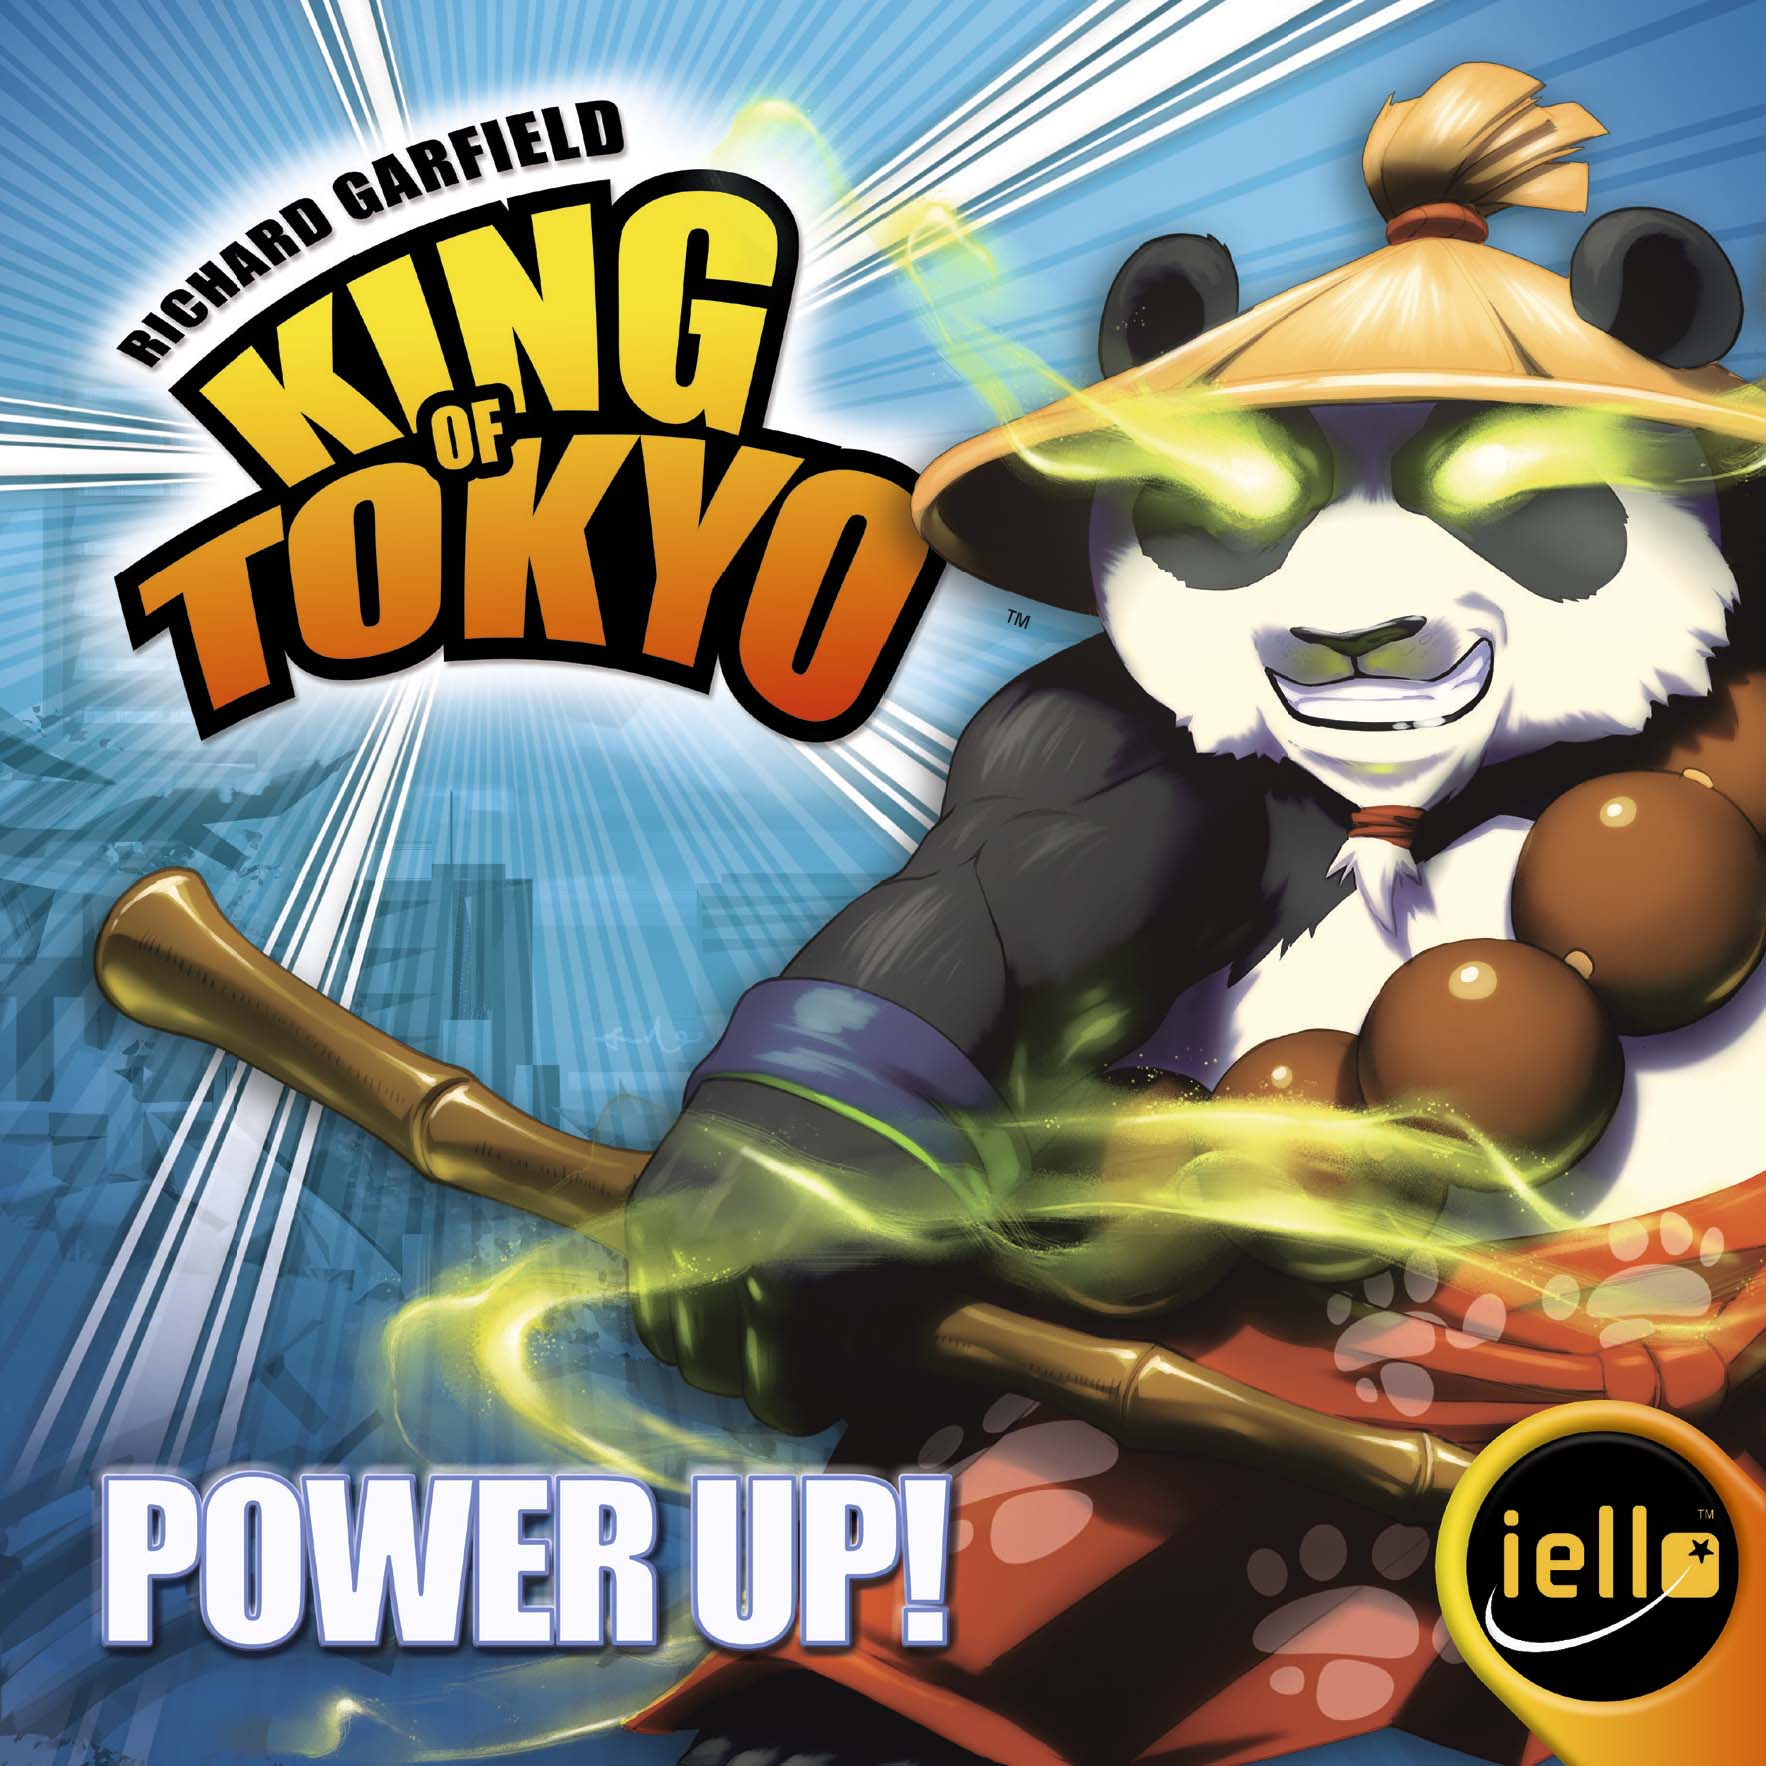 King of Tokyo: Power Up! und Monster Pack - Cthulhu